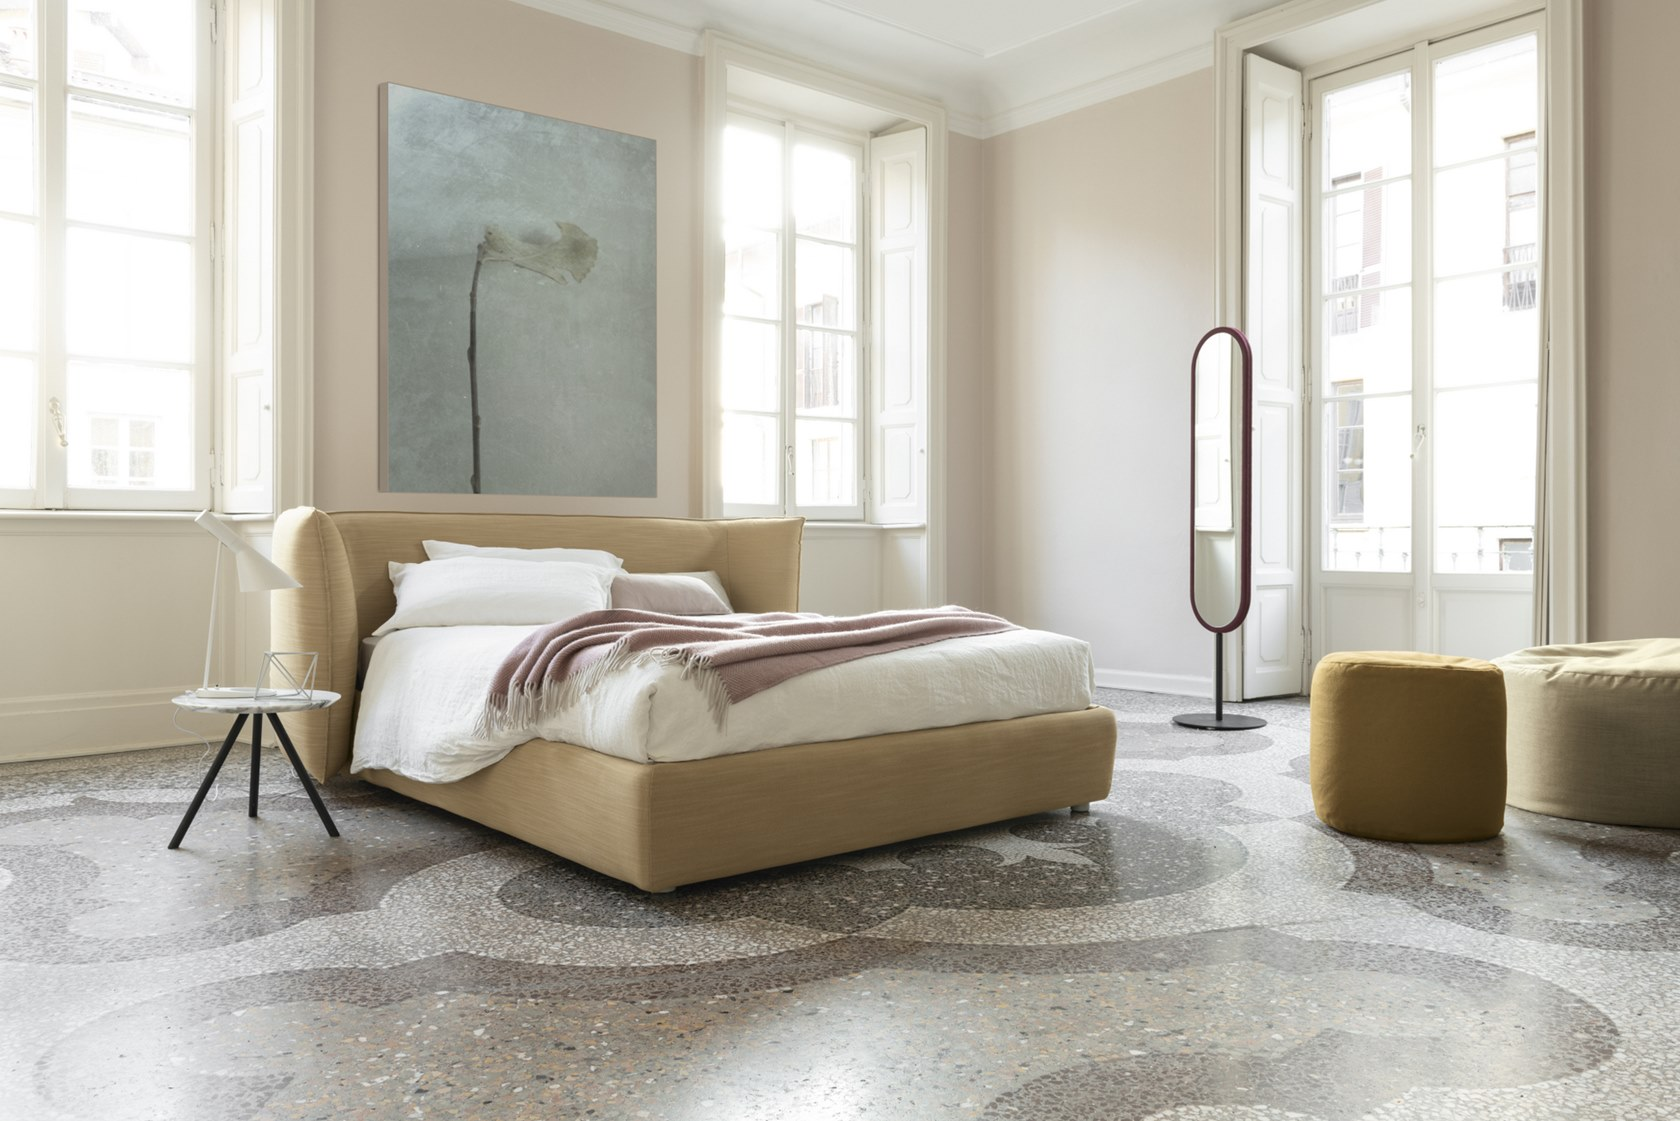 Jill Bed - Jill envelops thoughts and dreams by the embrace of its headboard, creating a comfortable intimate atmosphere. Its soft and generous shapes have a leading role in the night space, dominating also the room center.   All beds are available in different sizes and frame options. Please enquire for more details.   Matter of Stuff